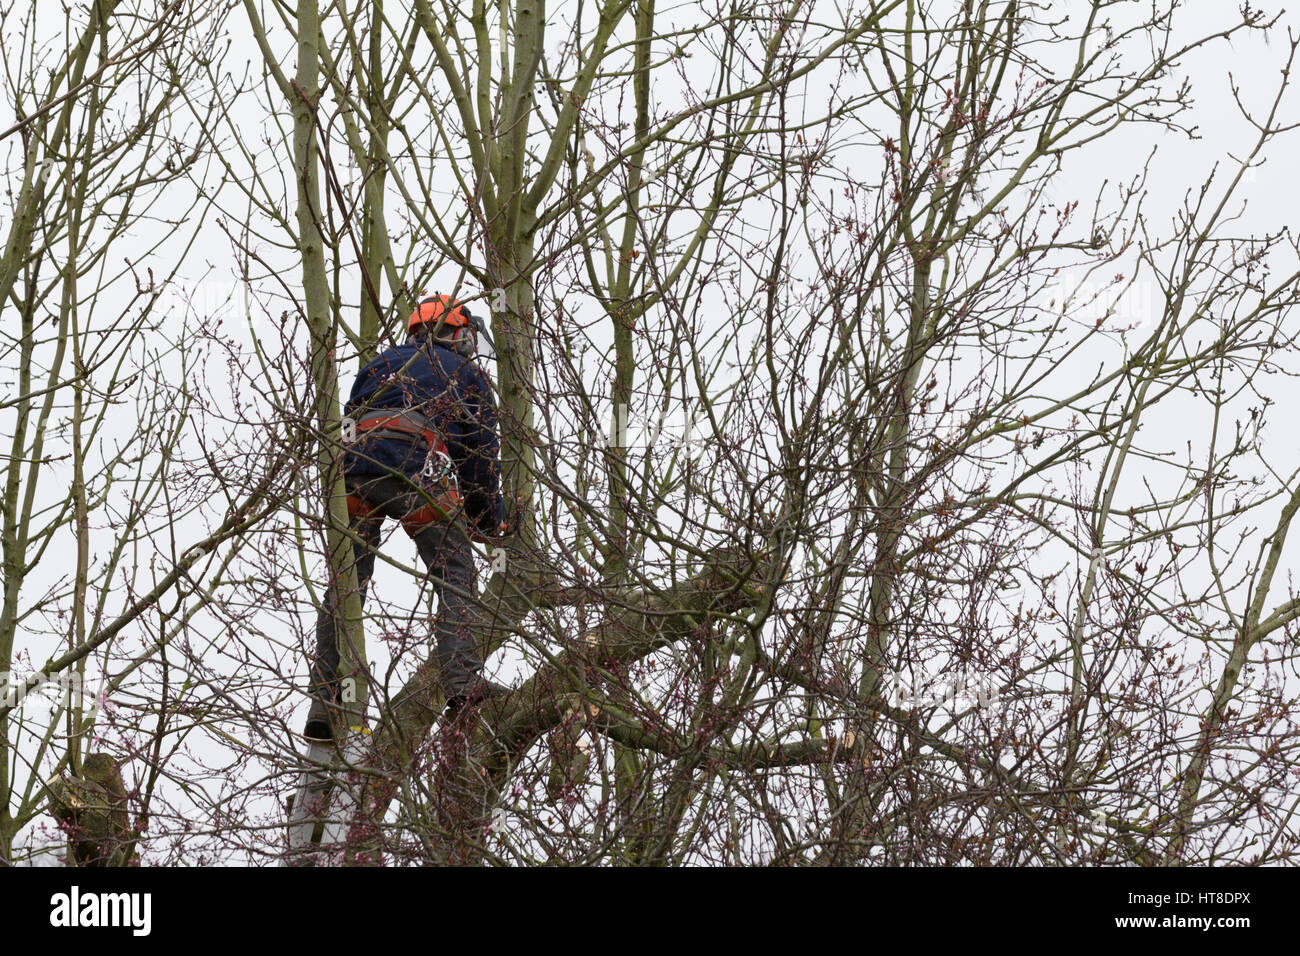 Tree surgeon working with chainsaw in tree canopy and wearing protective clothing and hardhat, uk - Stock Image